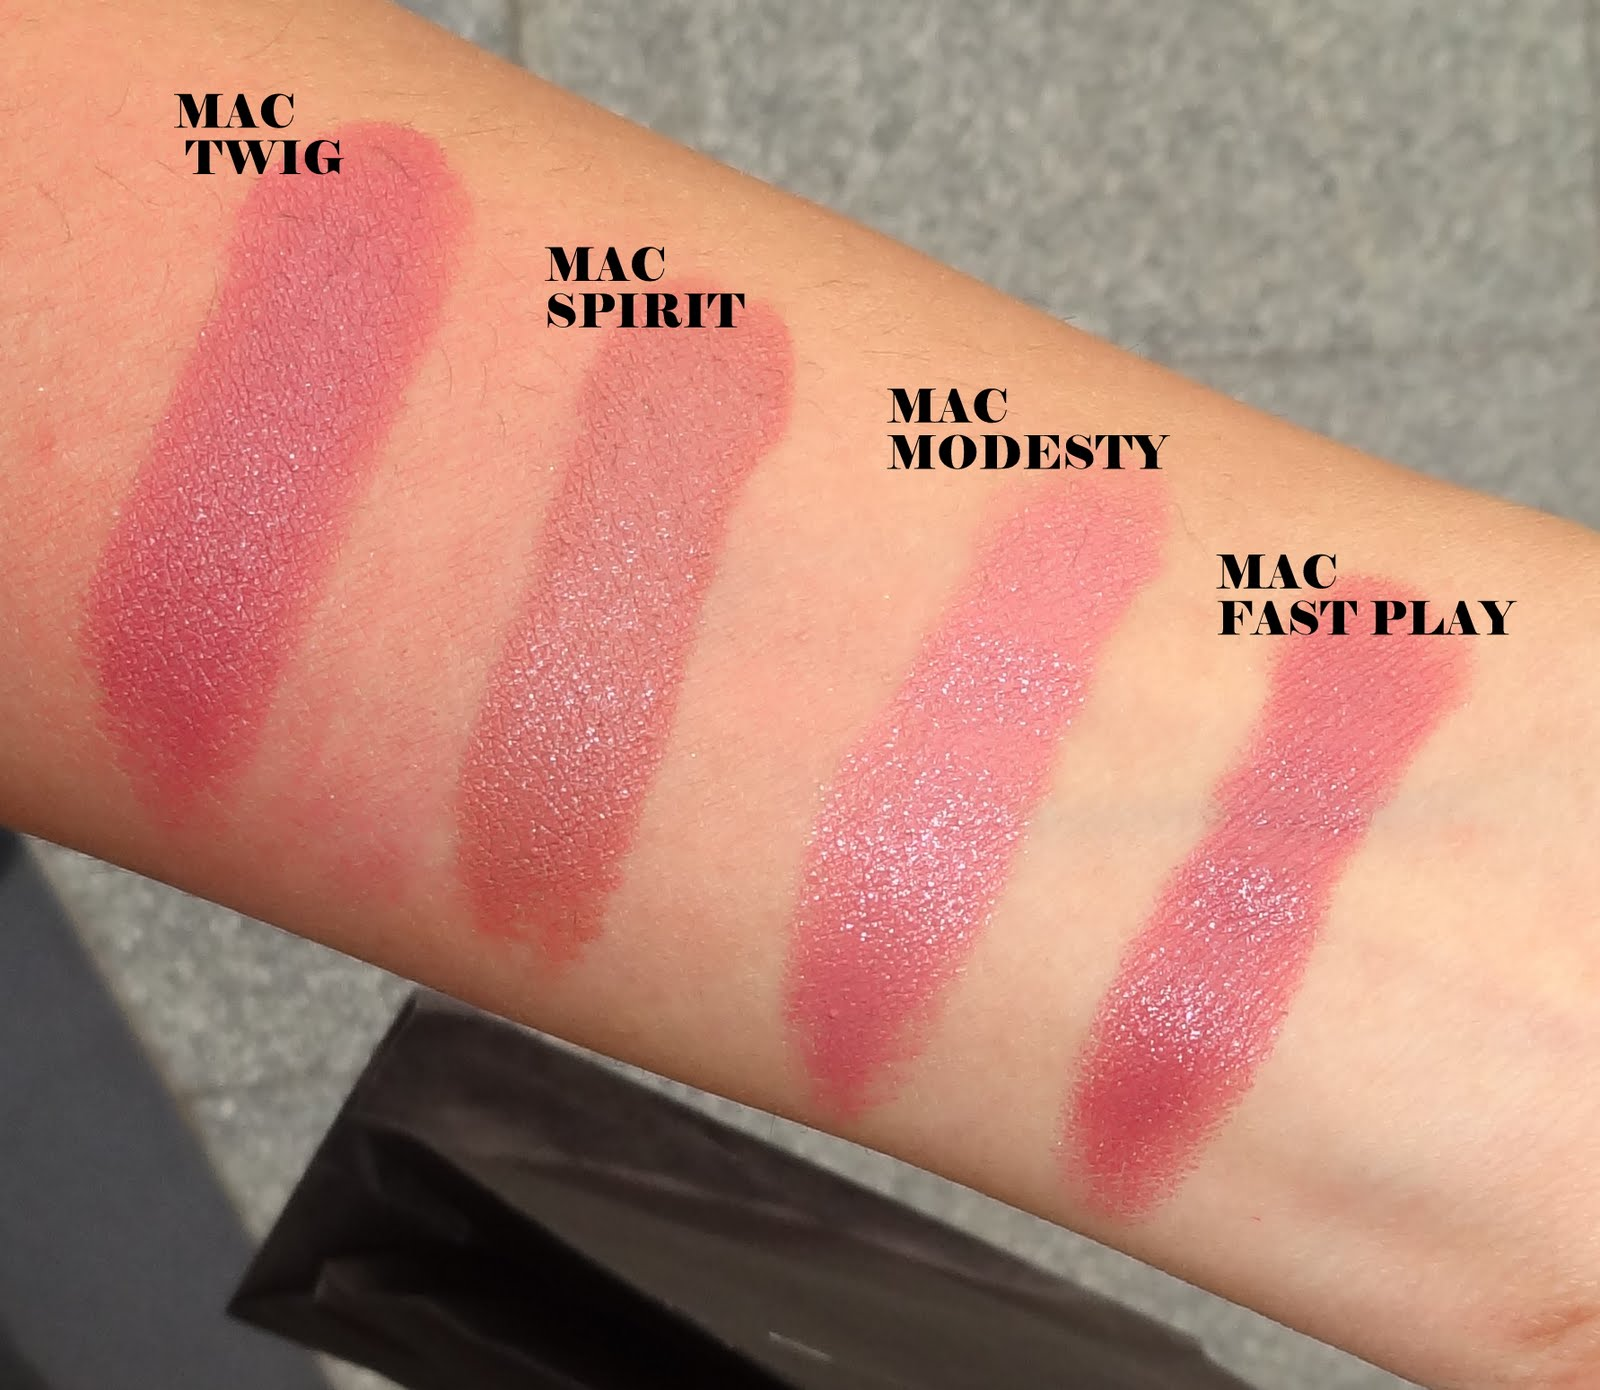 Hedendaags Mac Lipstick Swatches: Part 2 - Peachesandblush HT-57